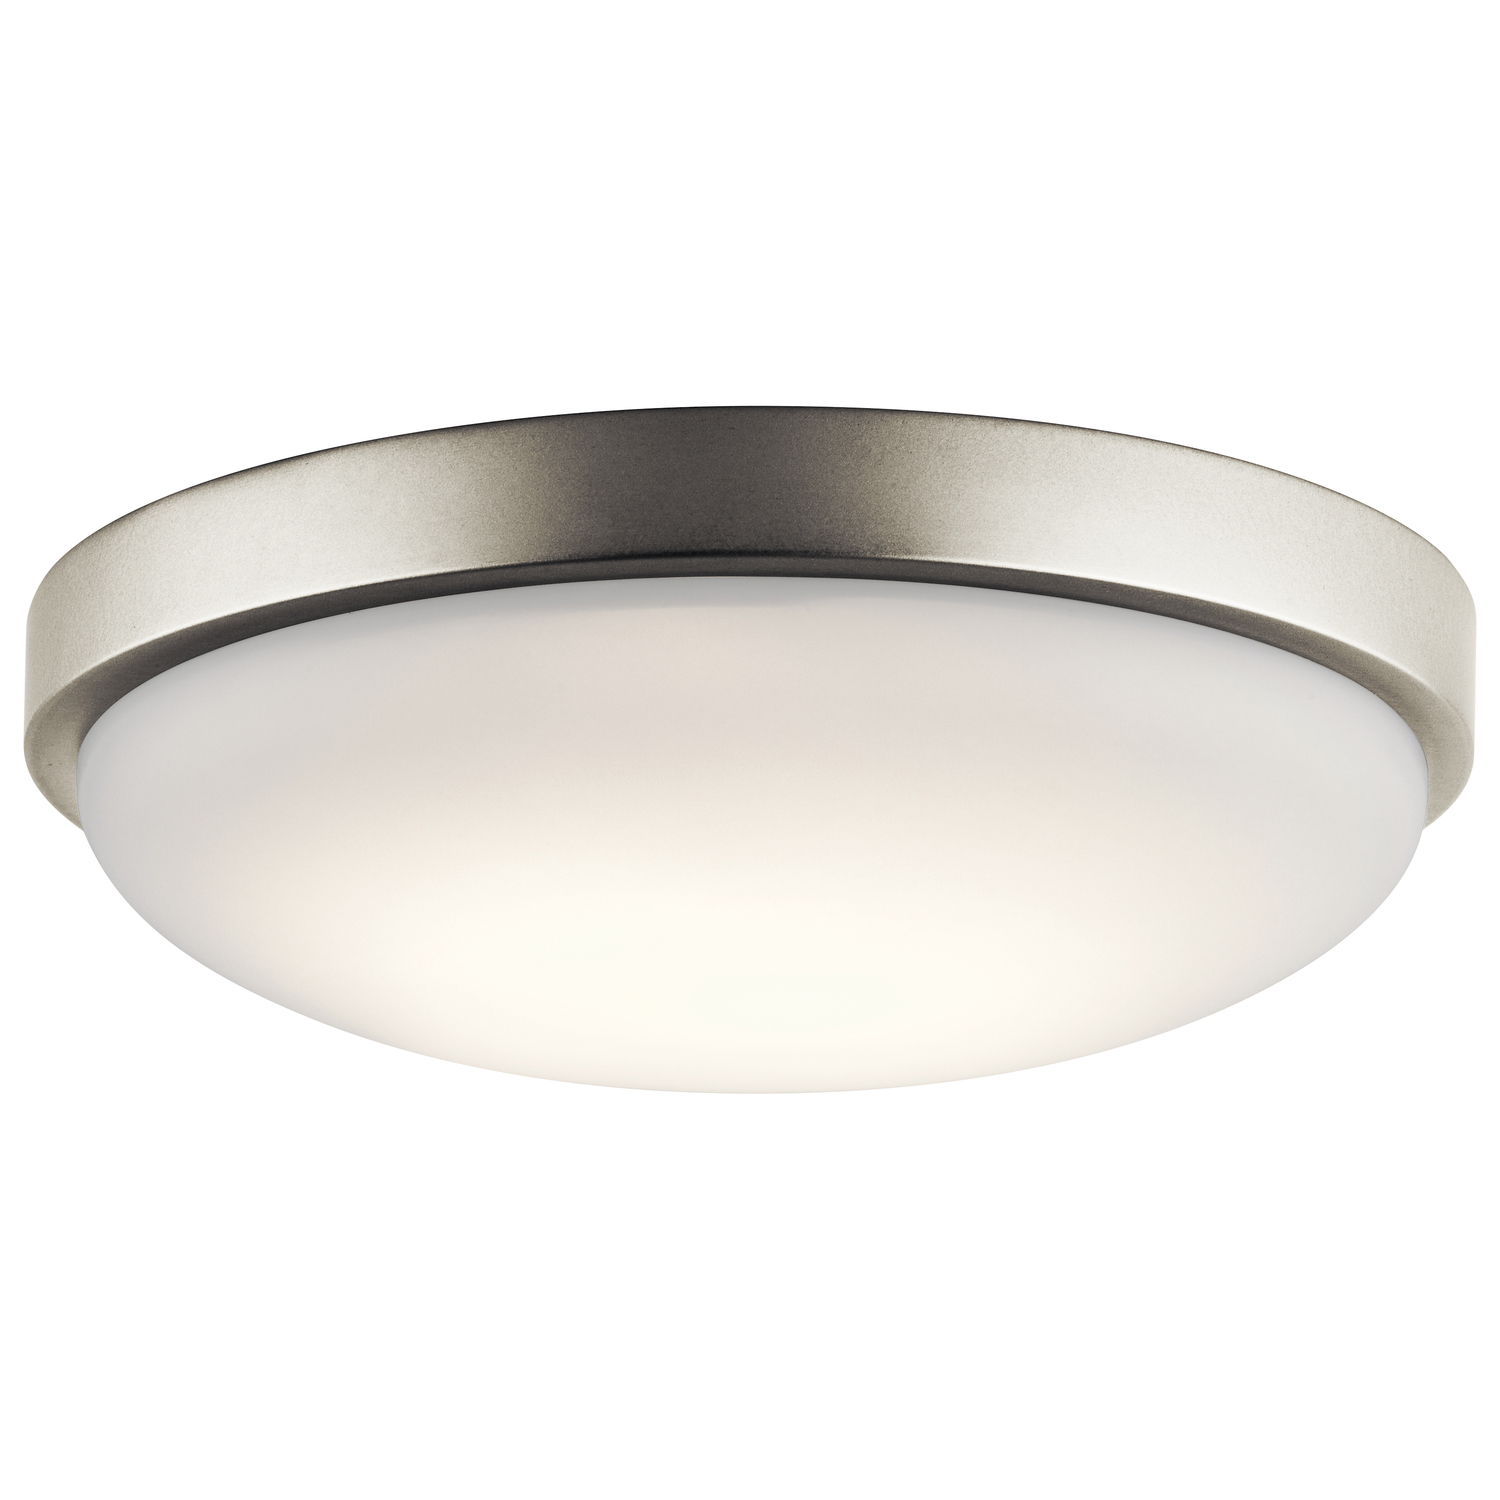 Simple led ceiling light fixture by kichler